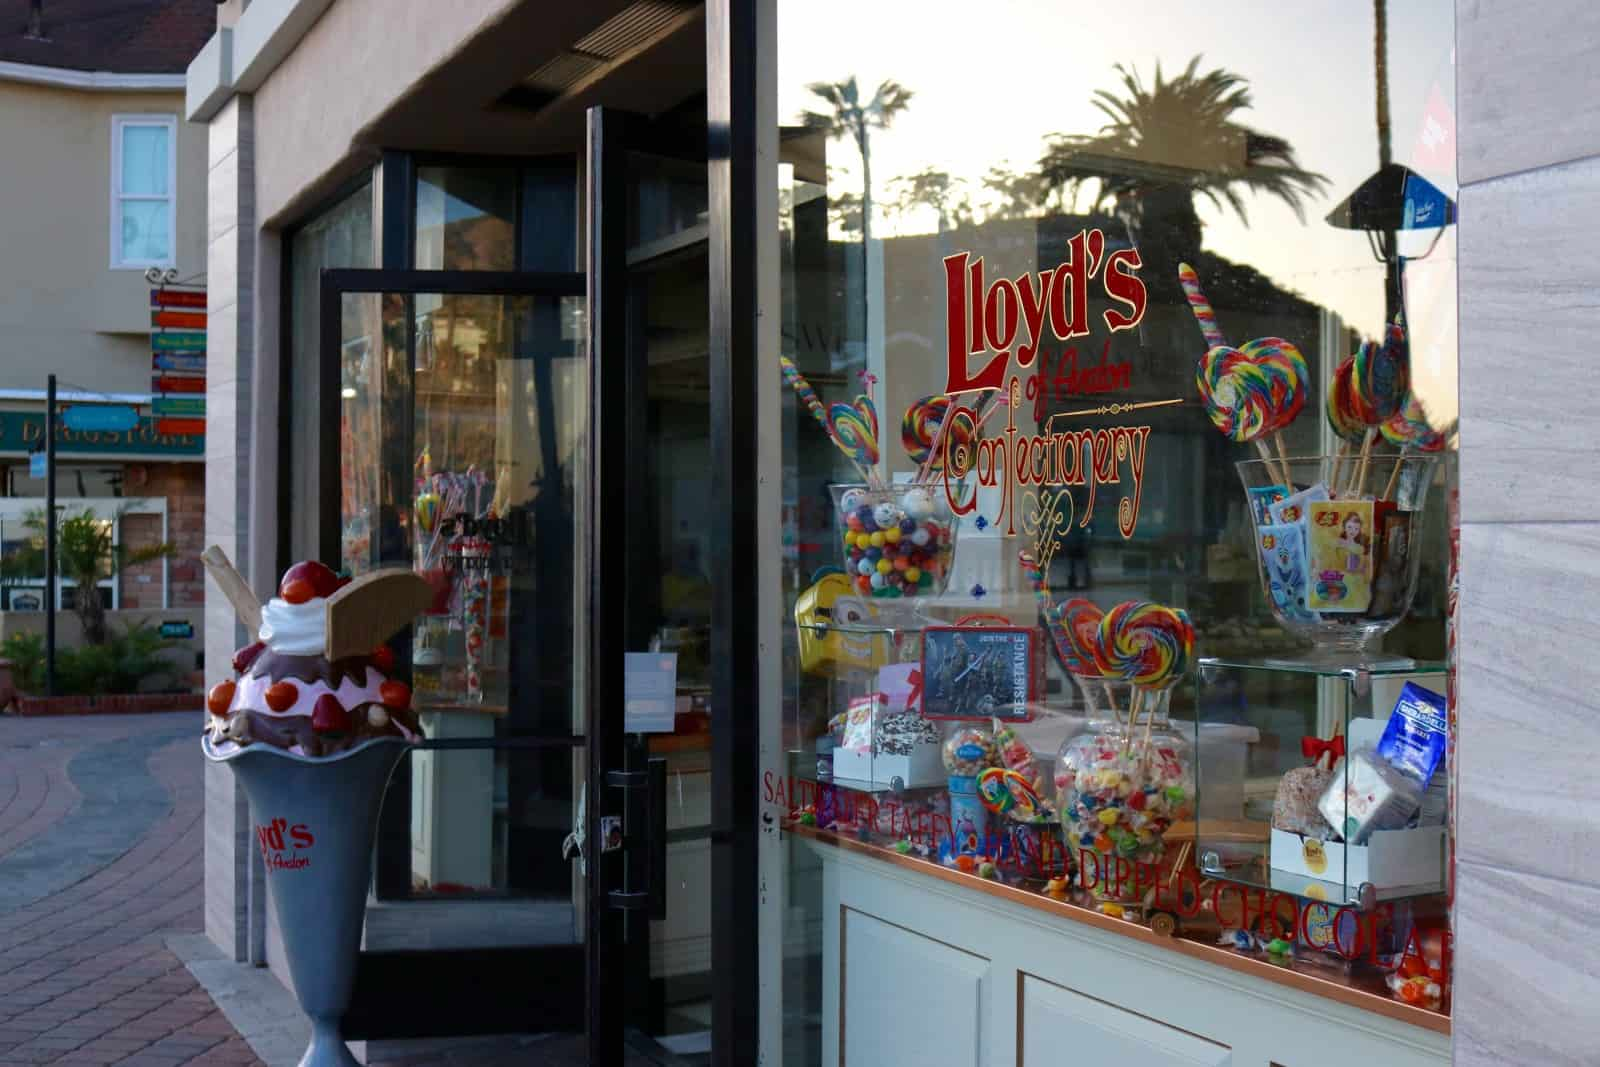 Catalina Island Llyods Candy